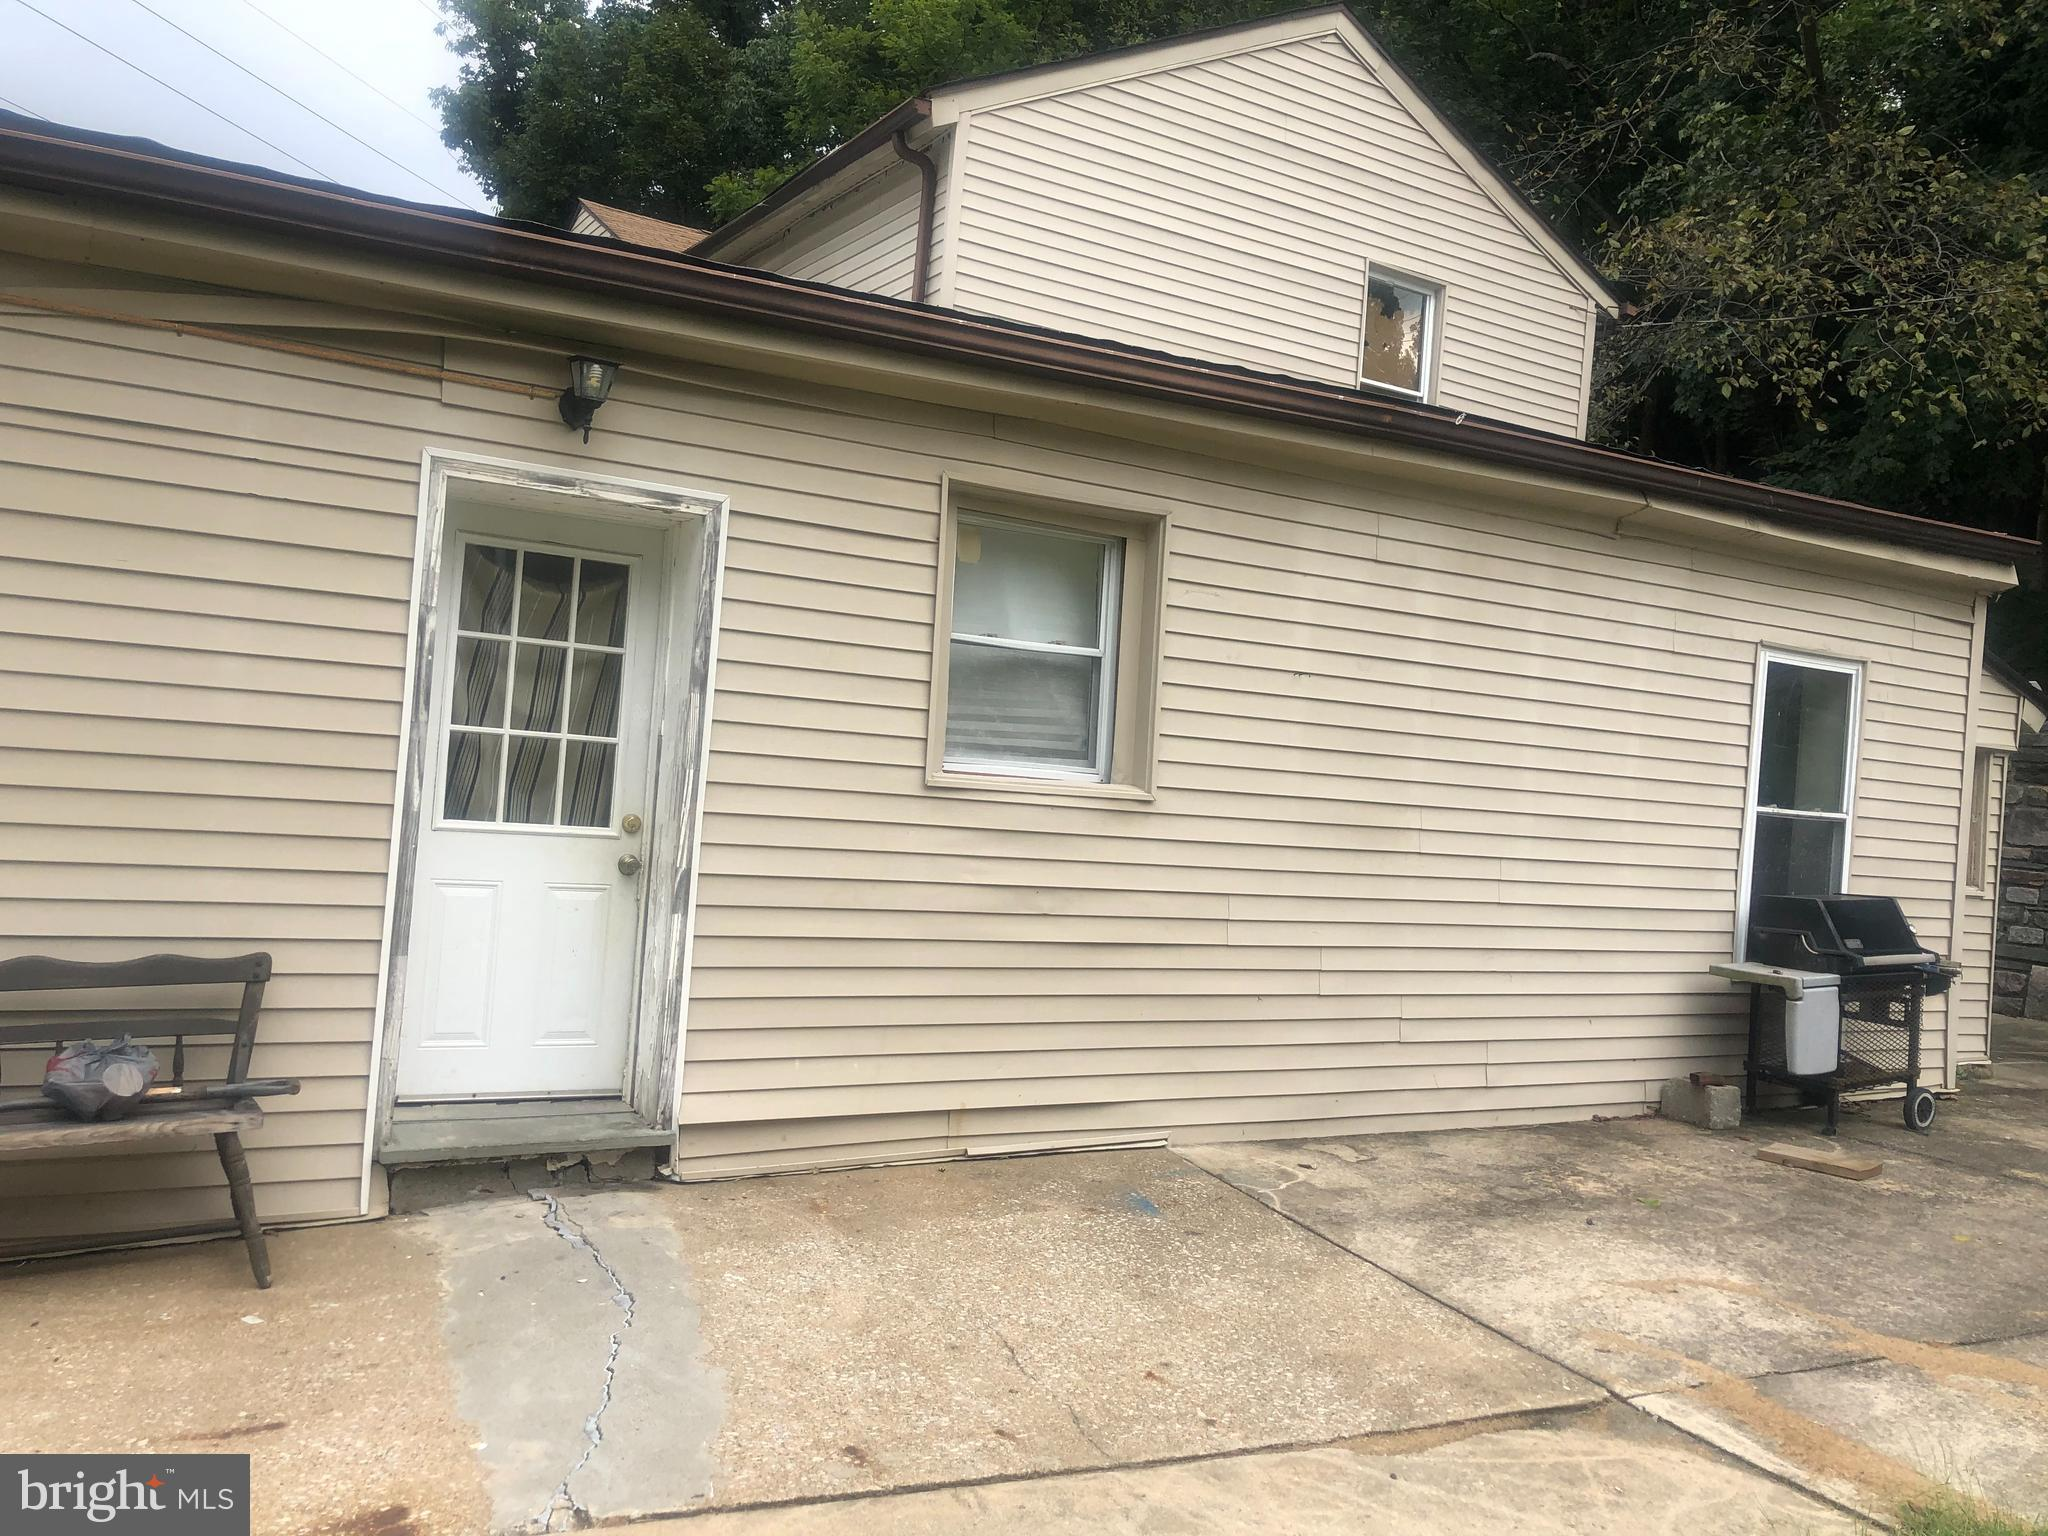 Bring your talents and creativity to this home . This could be a great value or even your own  home when all said and done . Take this ruff and make it a diamond . Home sits at the end of the street so it is private with lots of parking . Huge lot with trees blocking for privacy . Close to shopping and 76 .